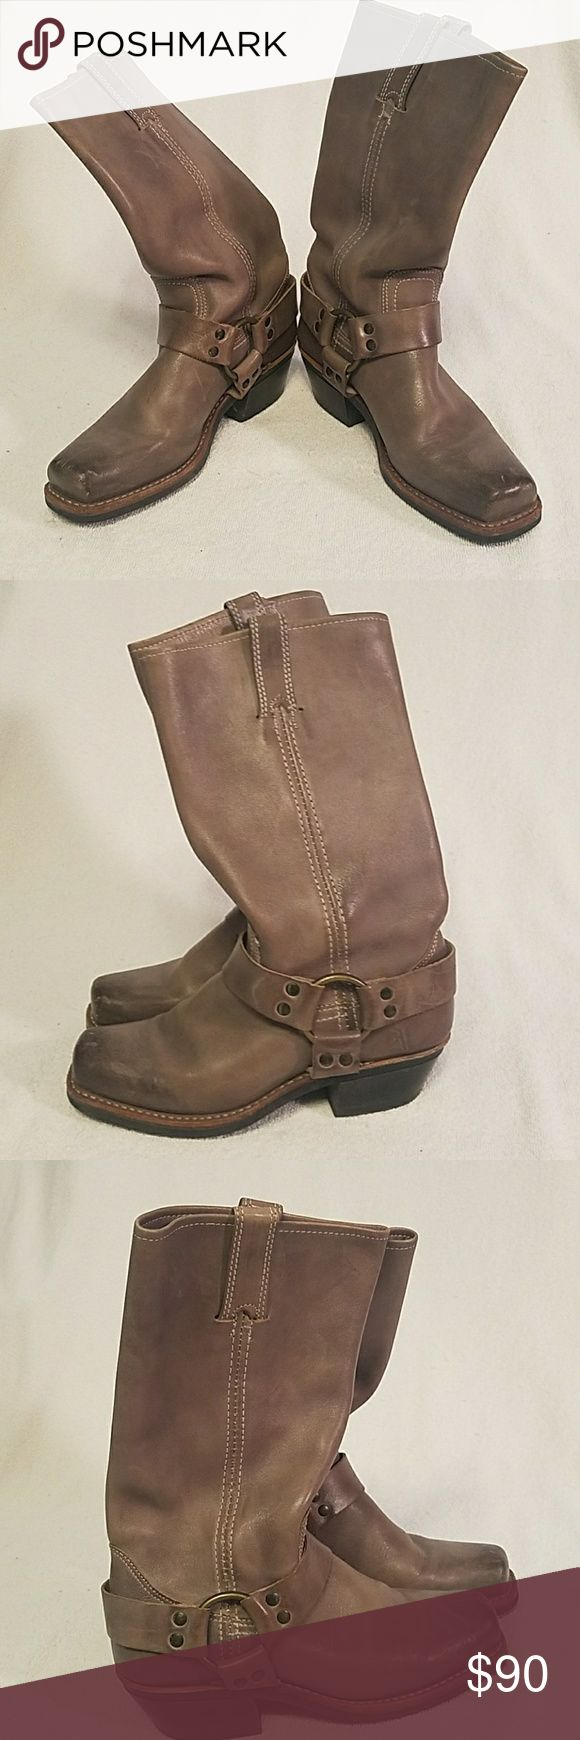 Frye harness boots Harness boots have distressed look in toe area it's a taupe color. Barely used very nice boots 5.5. Frye Shoes Combat & Moto Boots